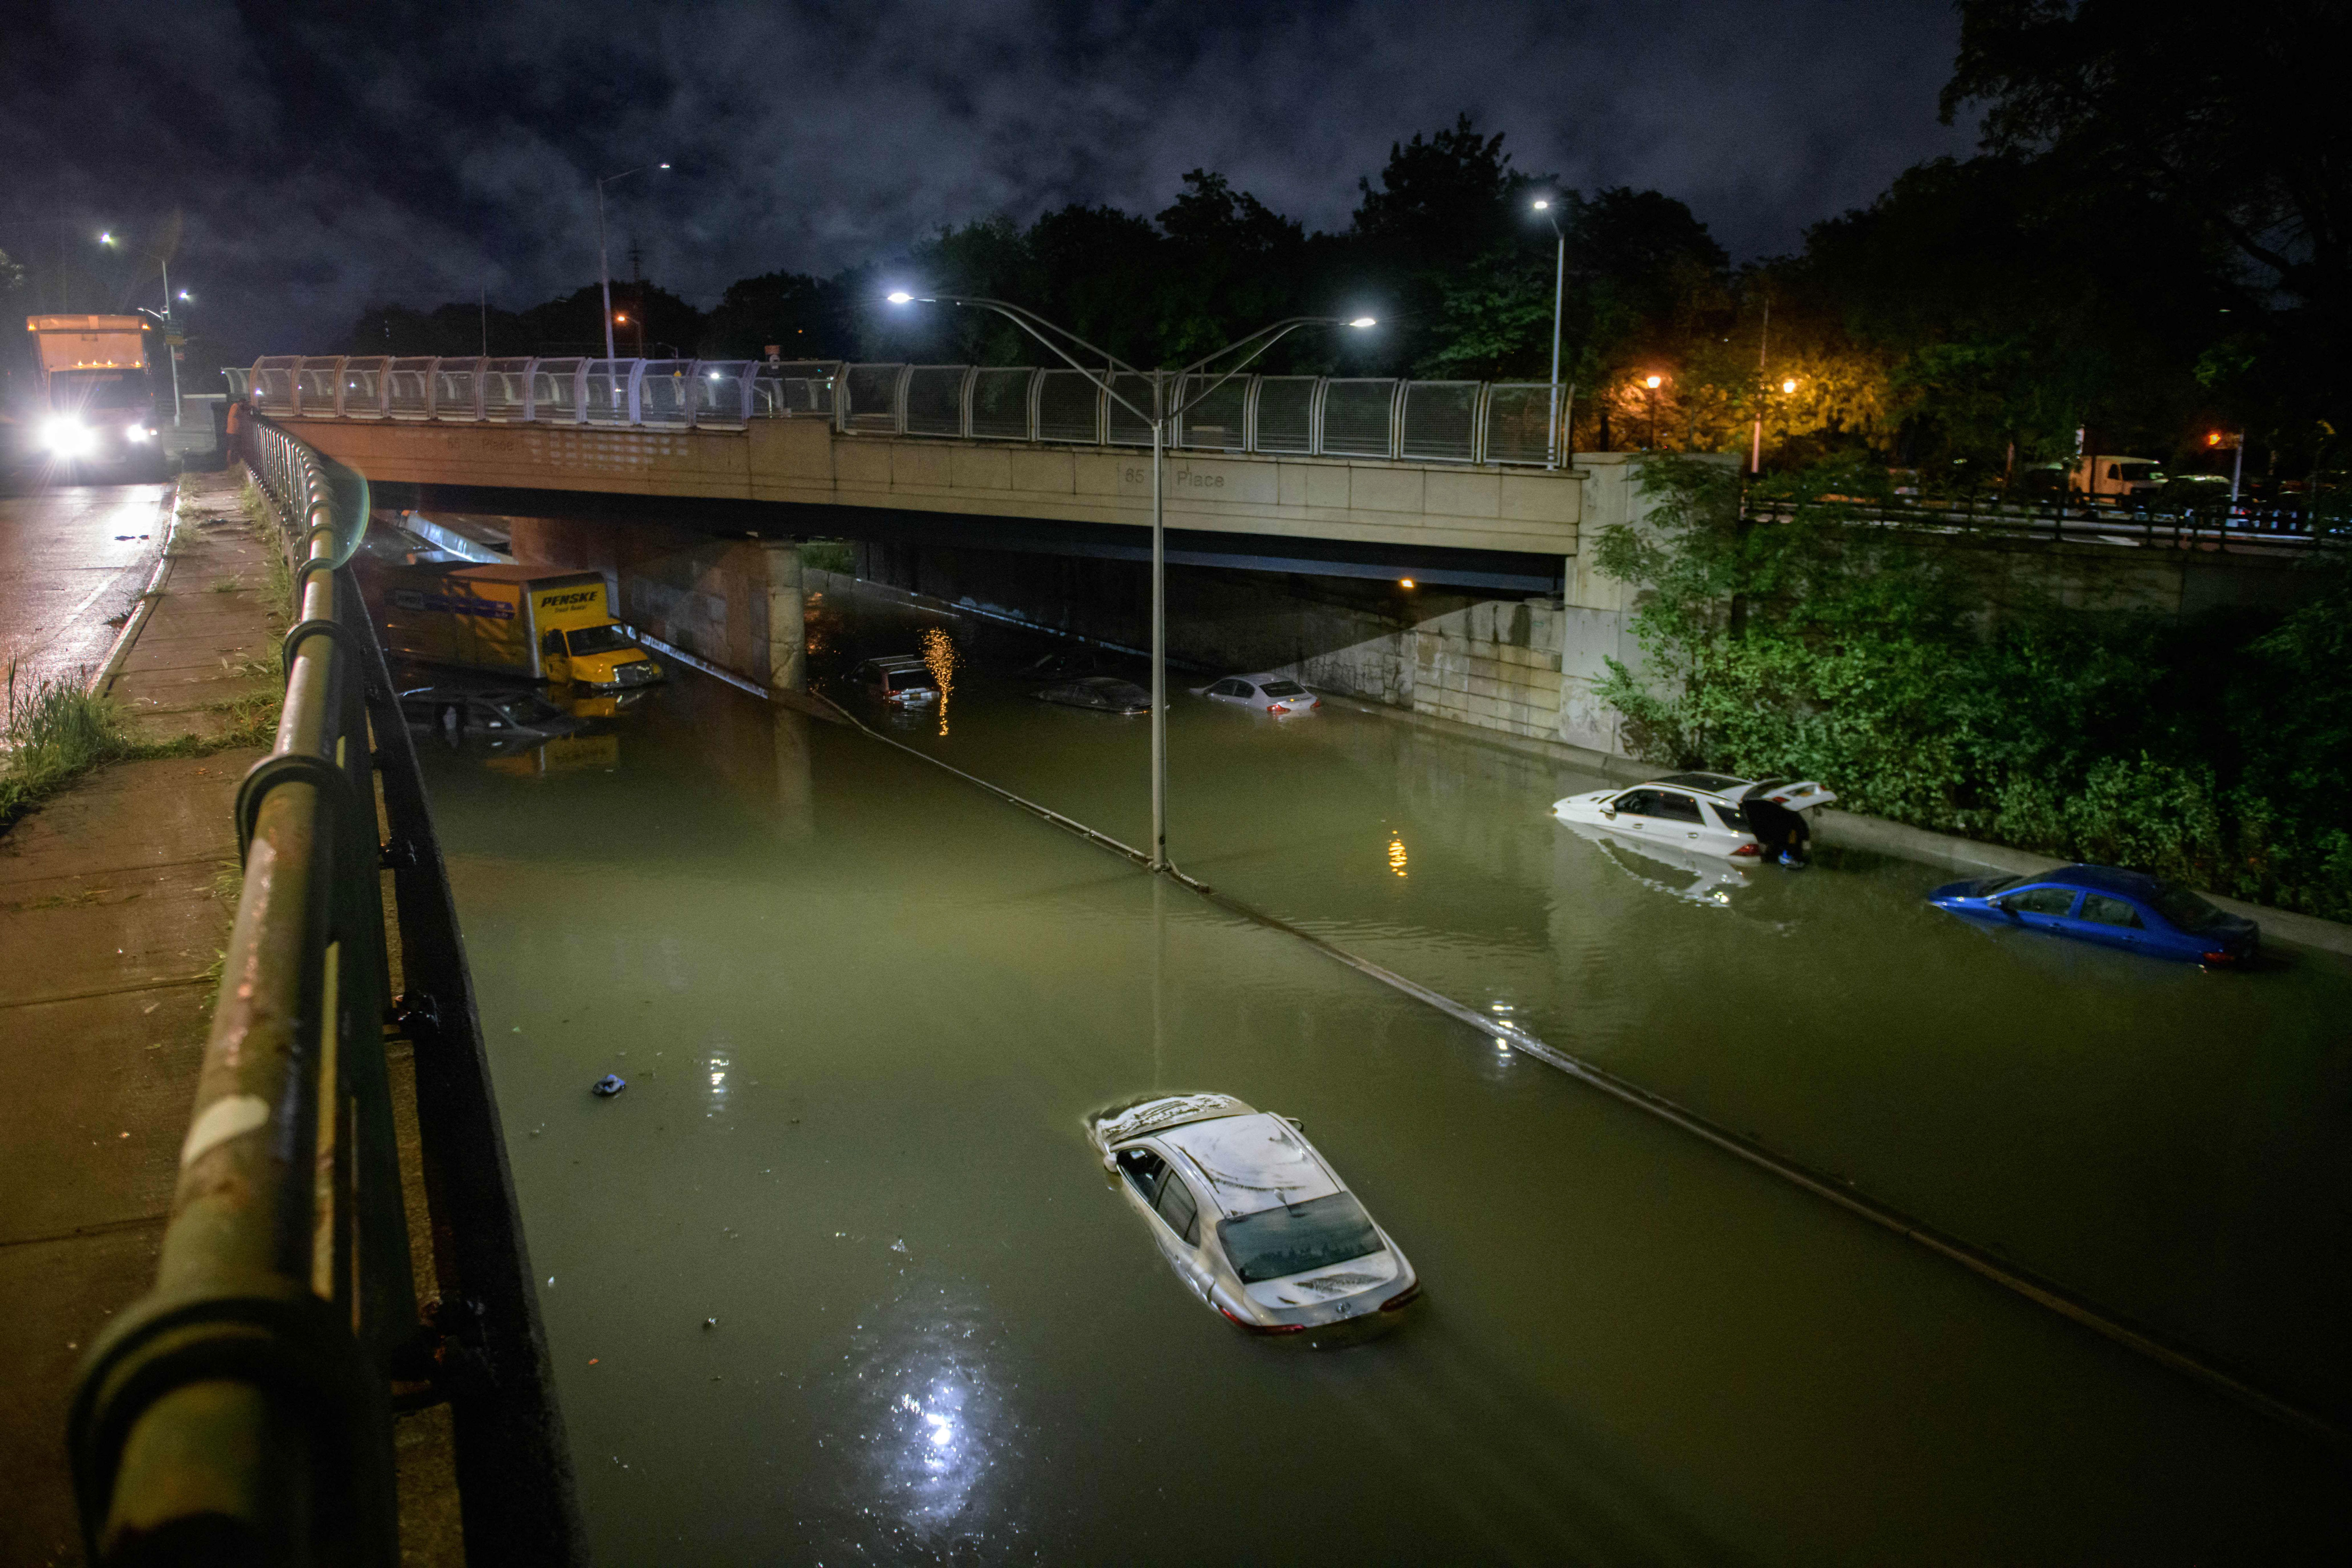 Vehicles are in floodwaters on an expressway in Brooklyn, New York, on September 2.